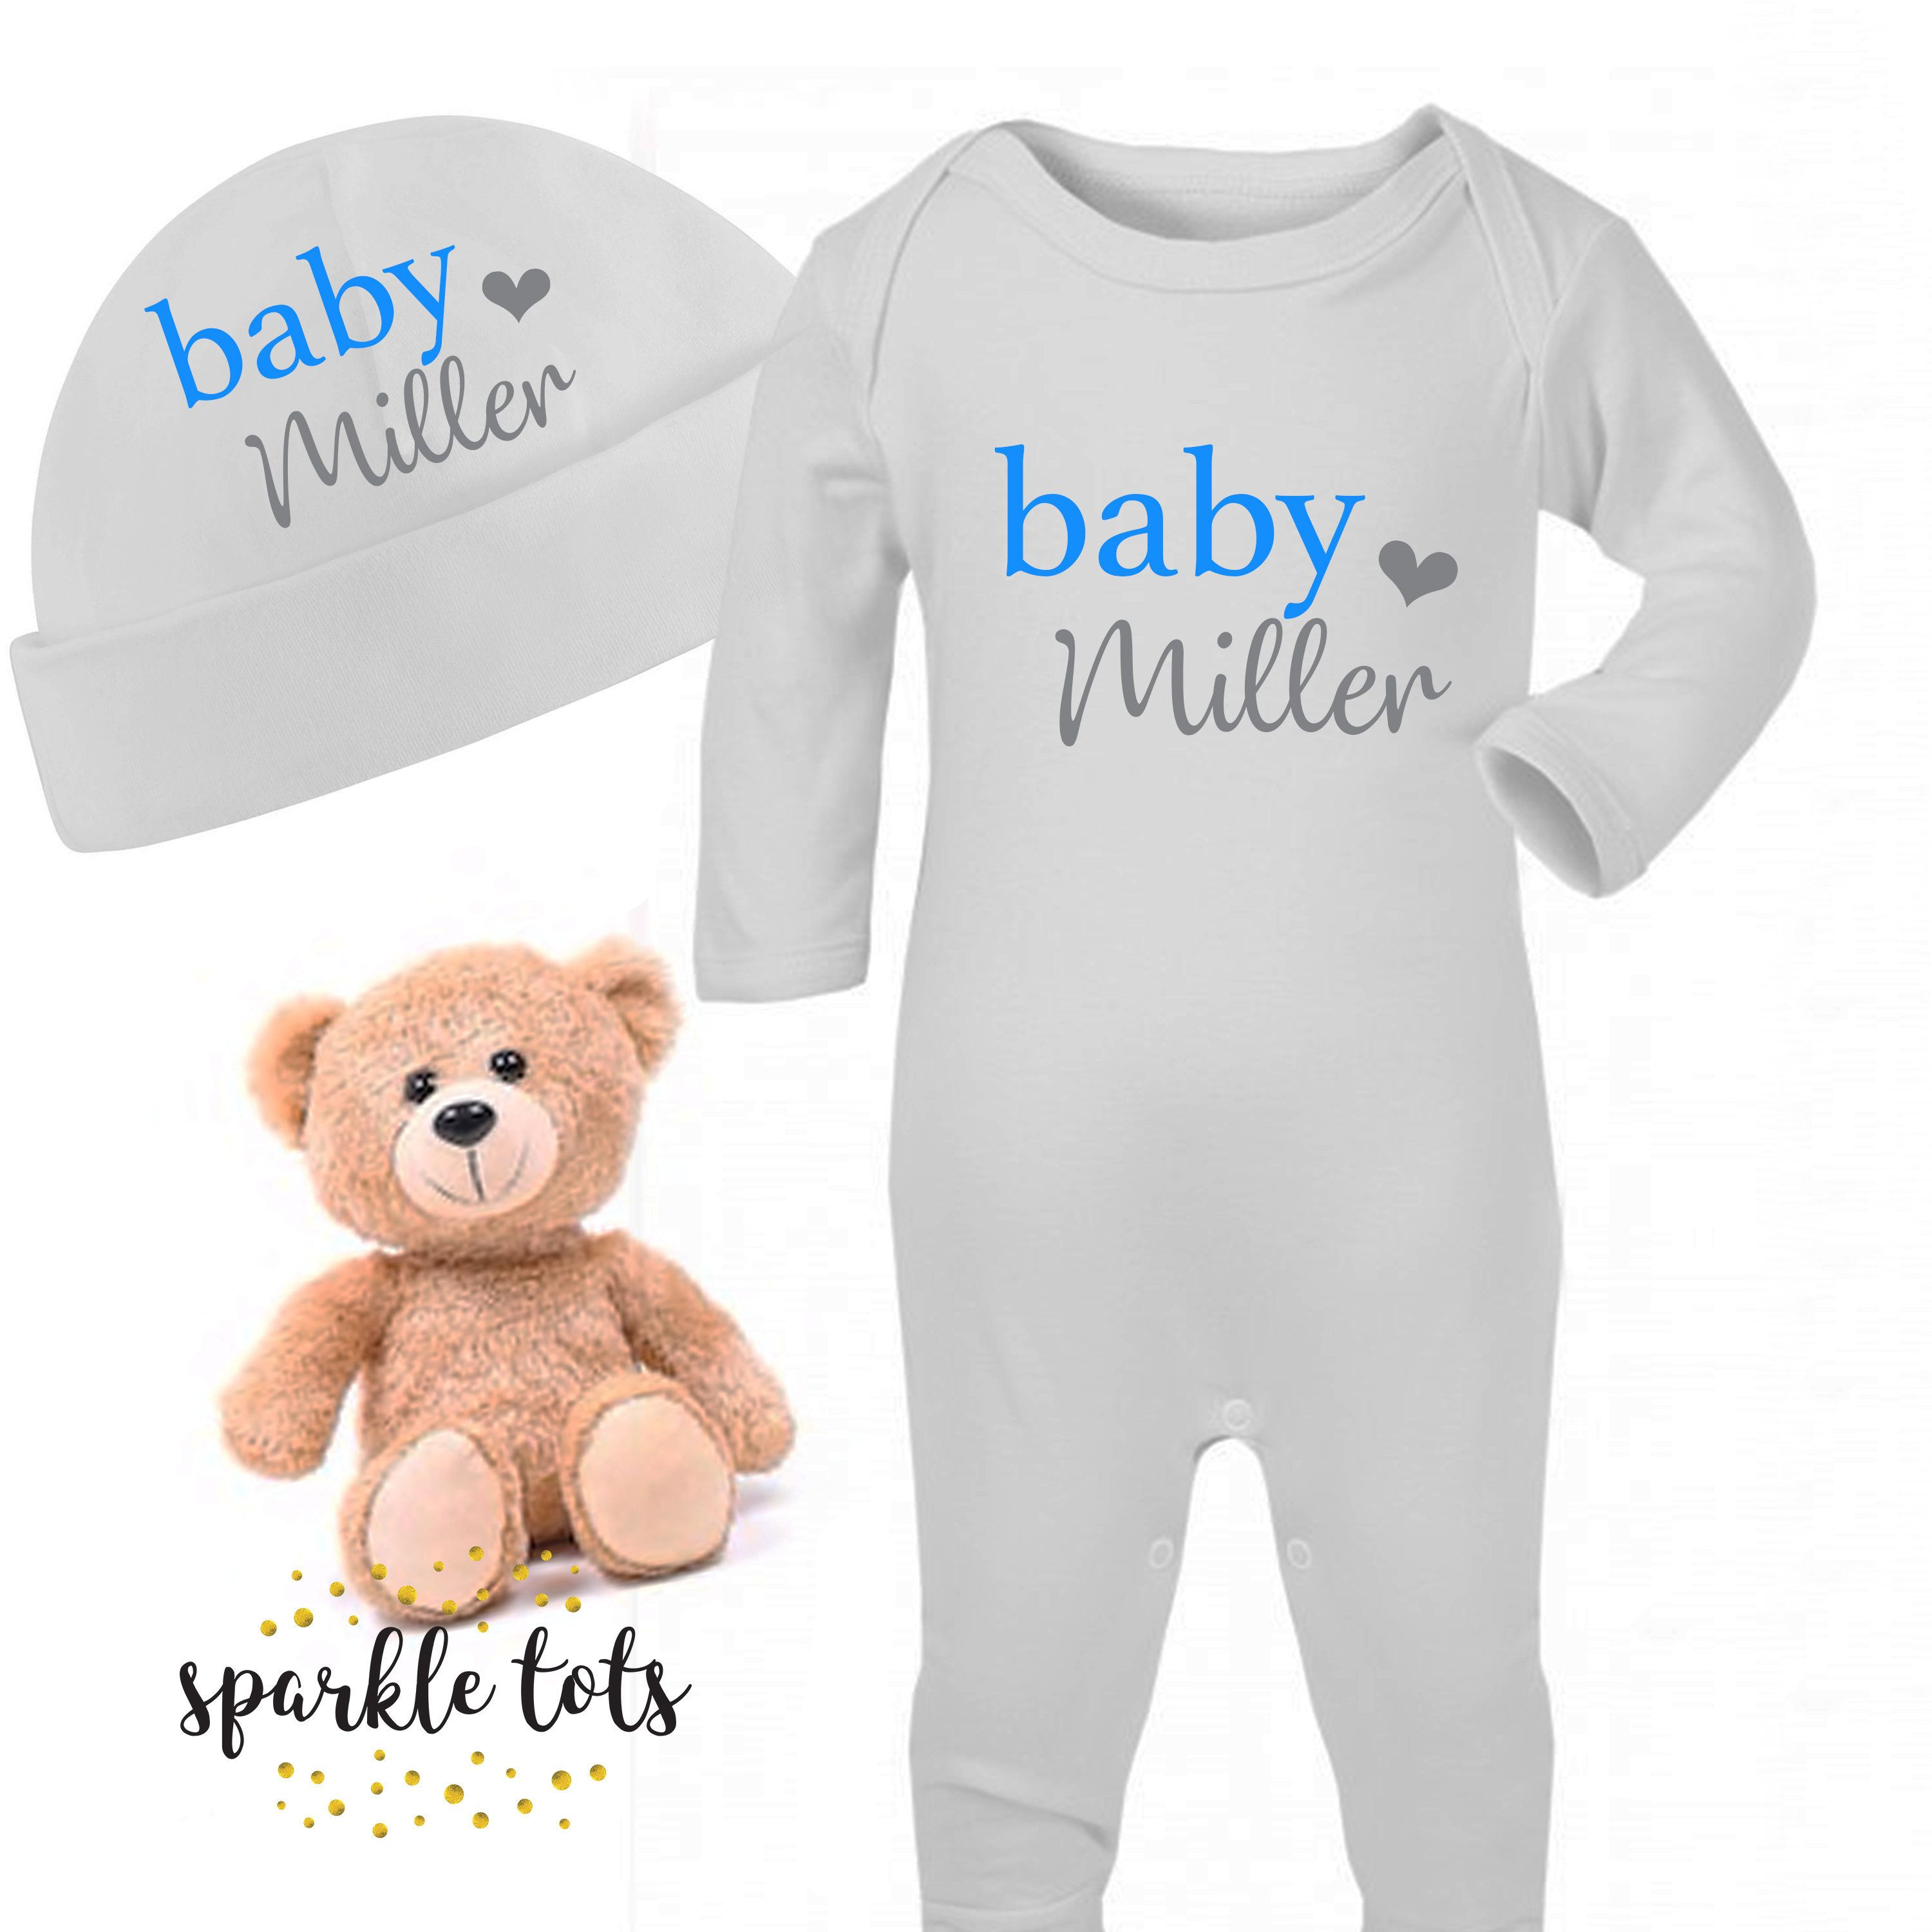 Personalised Baby Bear Sleepsuit and Hat Set Newborn Baby Gifts Unisex Baby Outfits